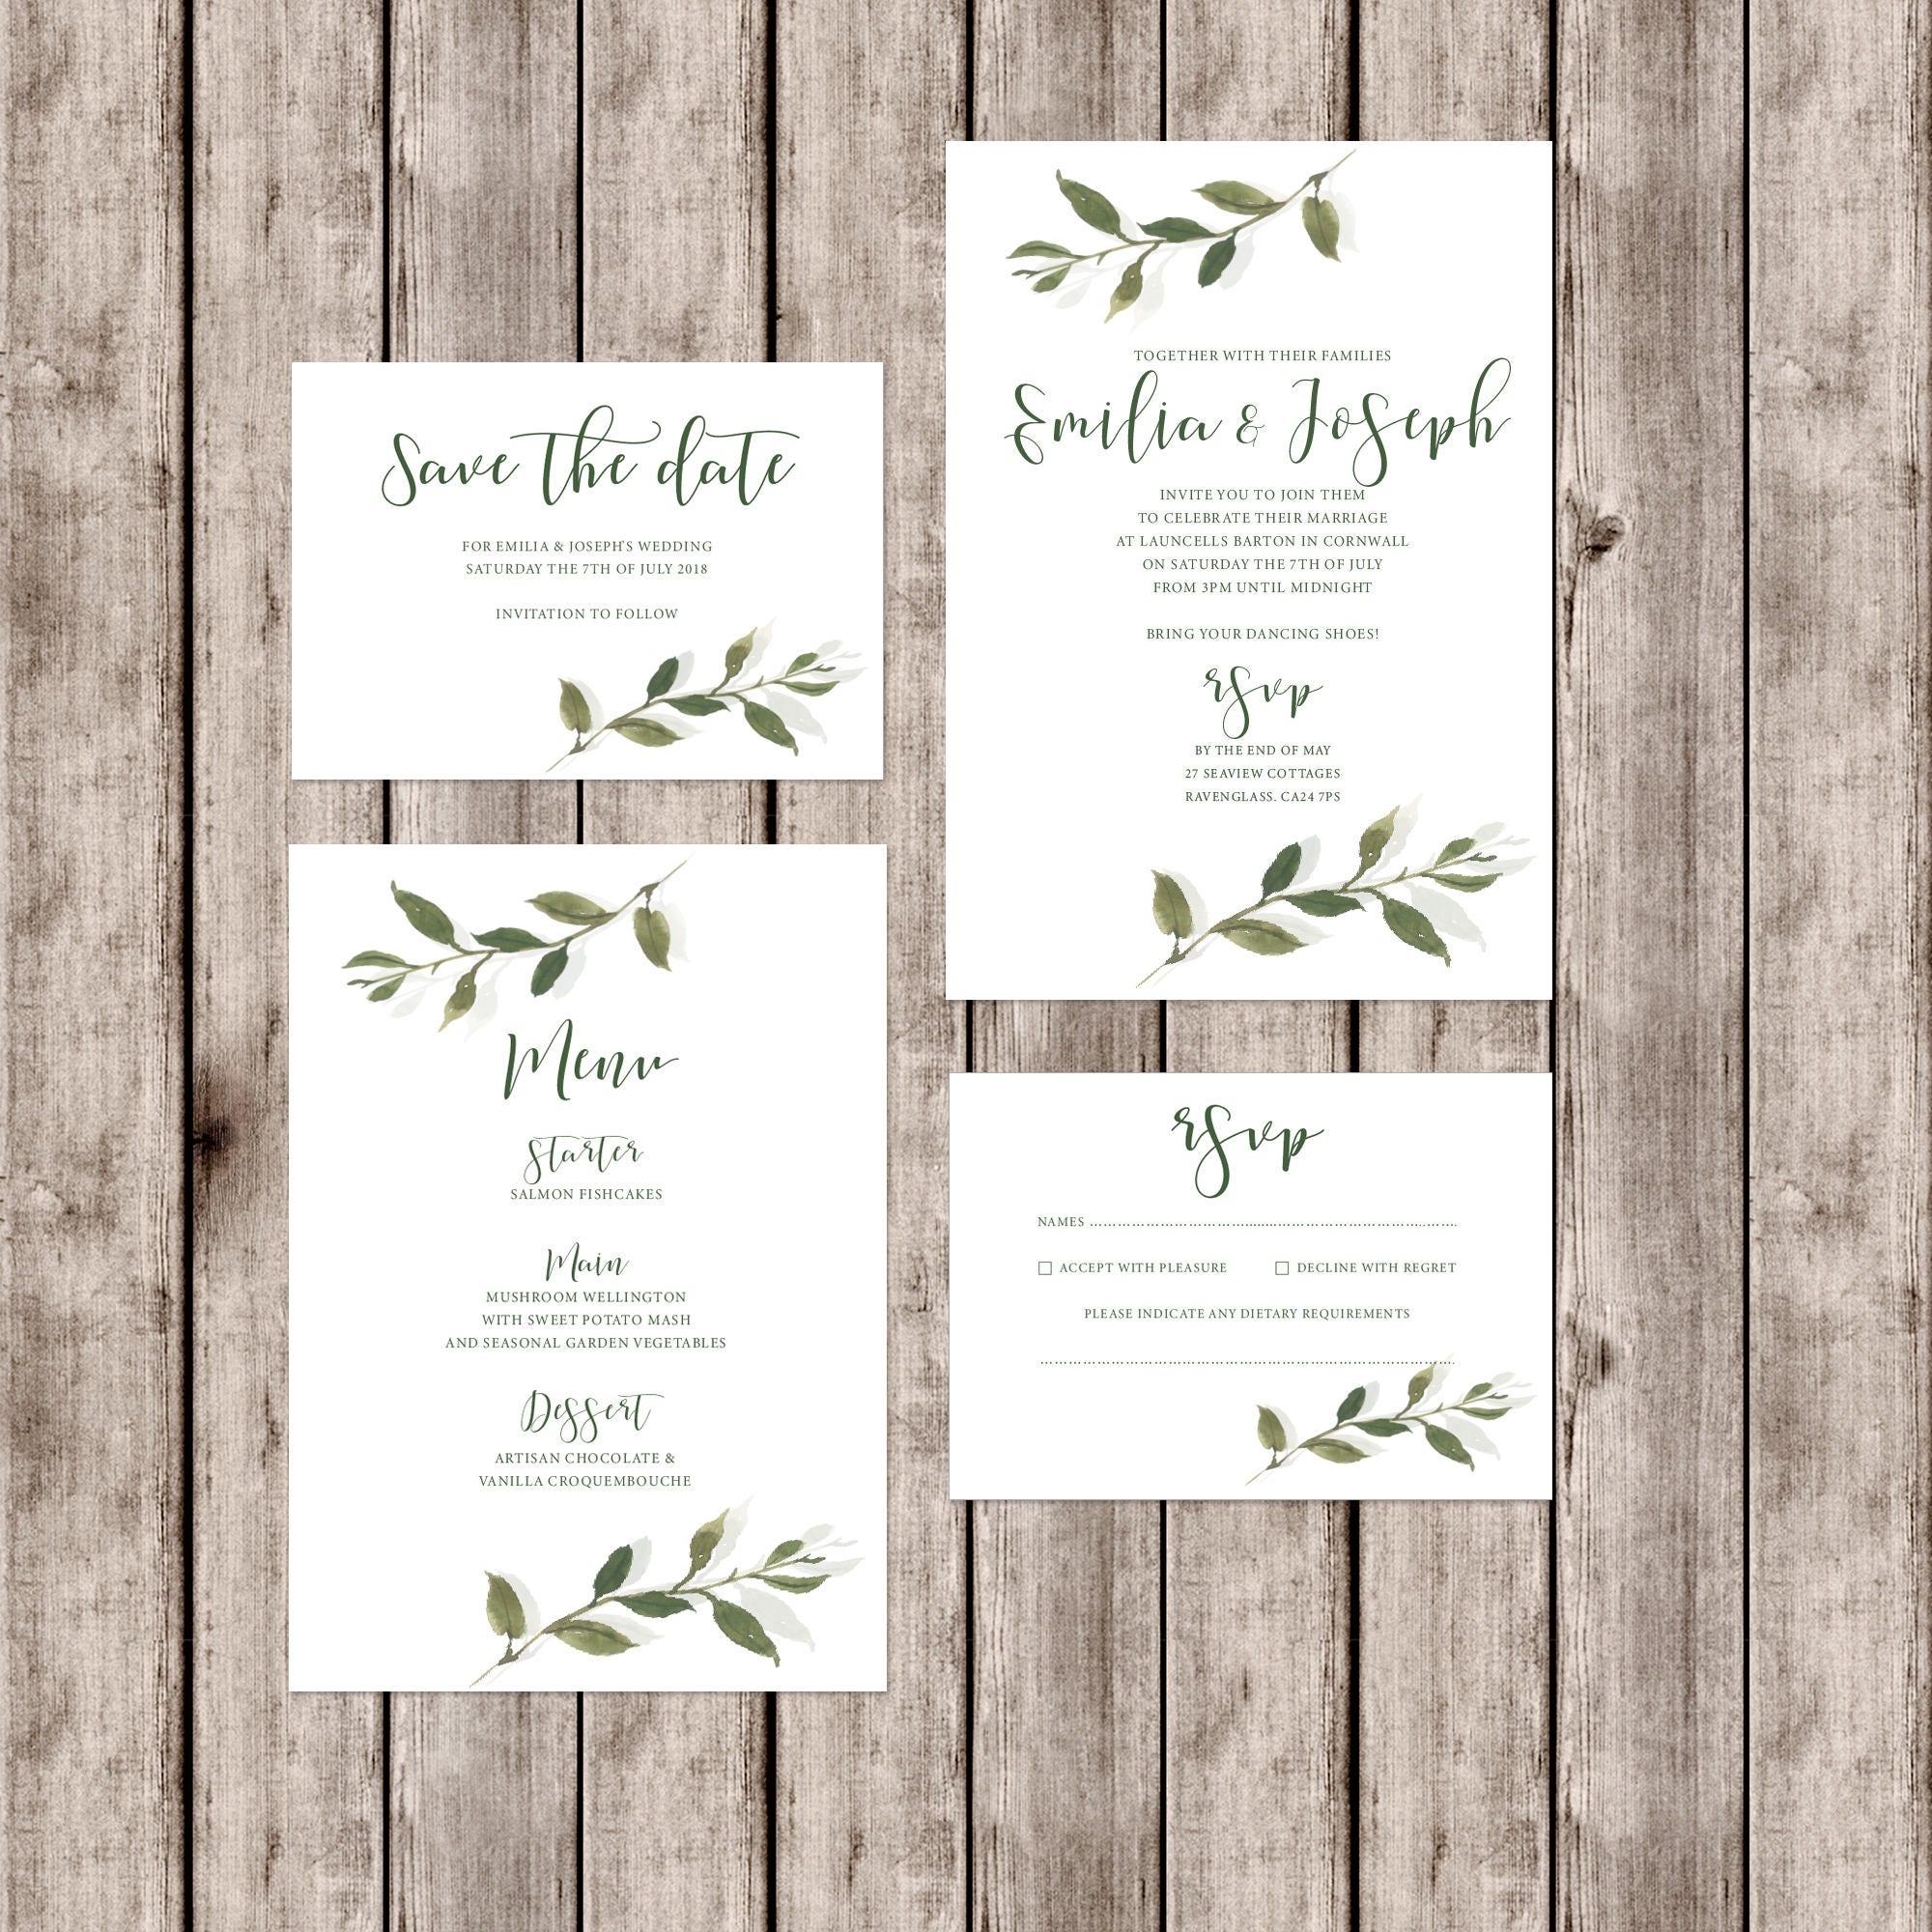 Sophisticated 'Somerset' Wedding Invitations With Leaf